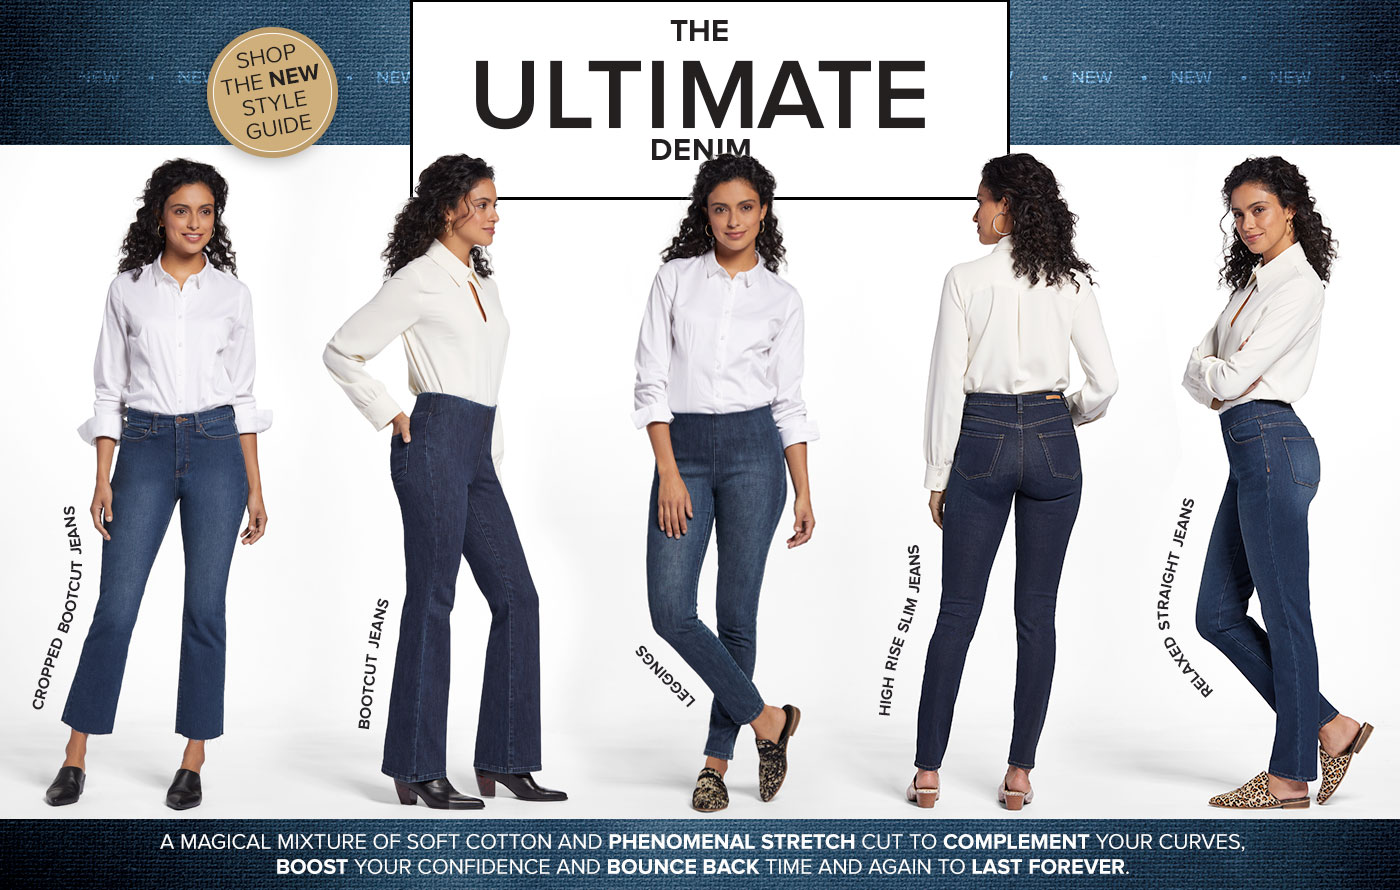 Introducing - The Ultimate Denim